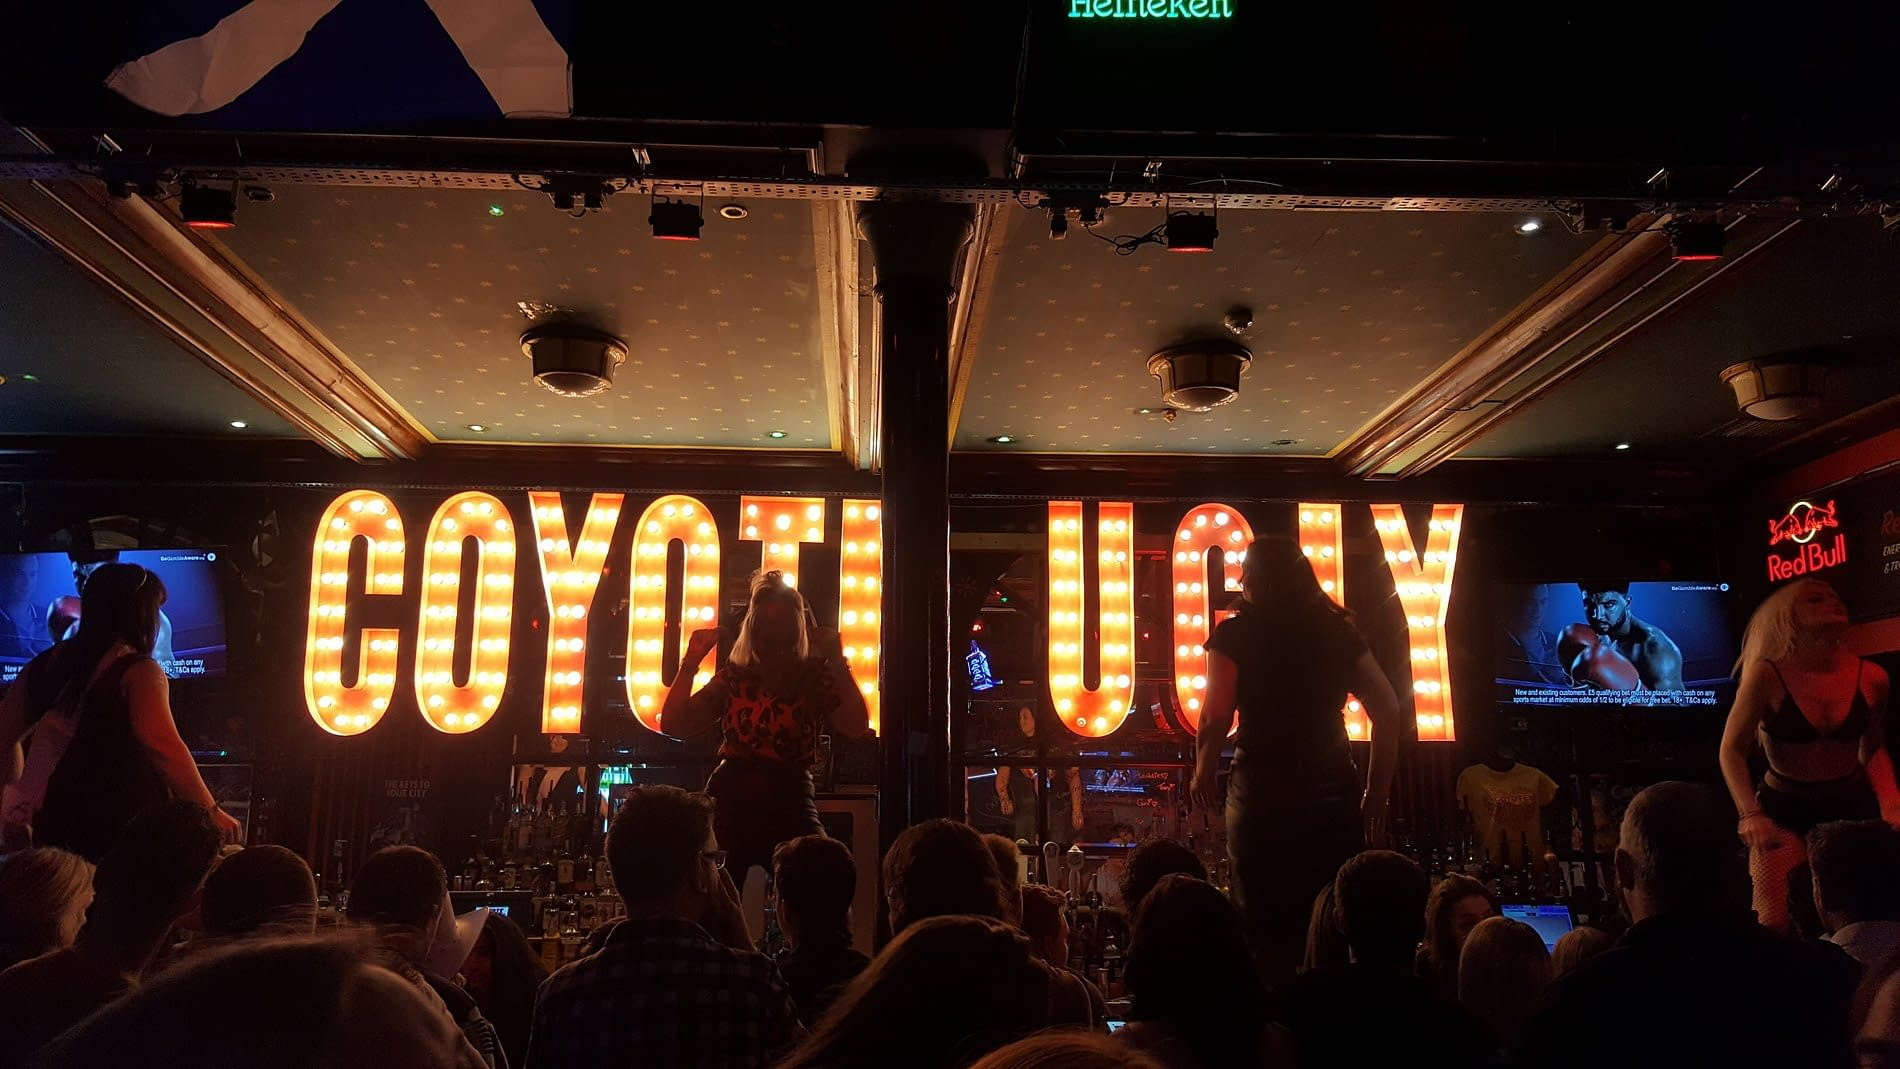 Stag Parties welcome at Coyote Ugly Cardiff